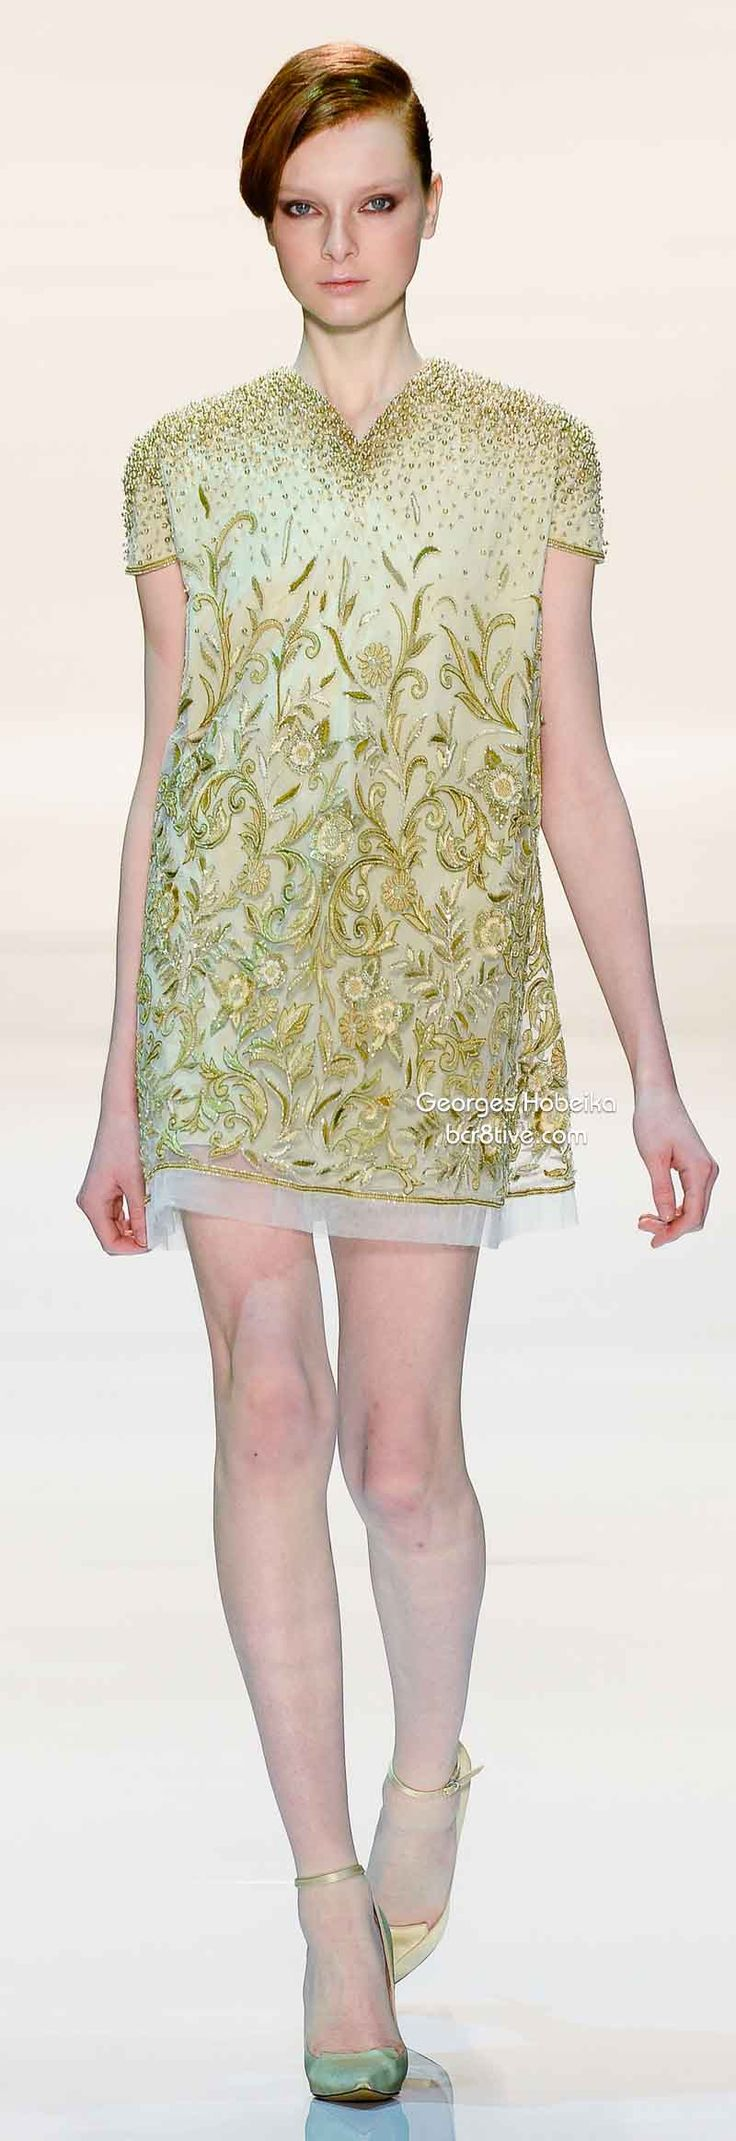 Georges Hobeika Spring 2014 This collection has many choices for Bride and Bridal Party